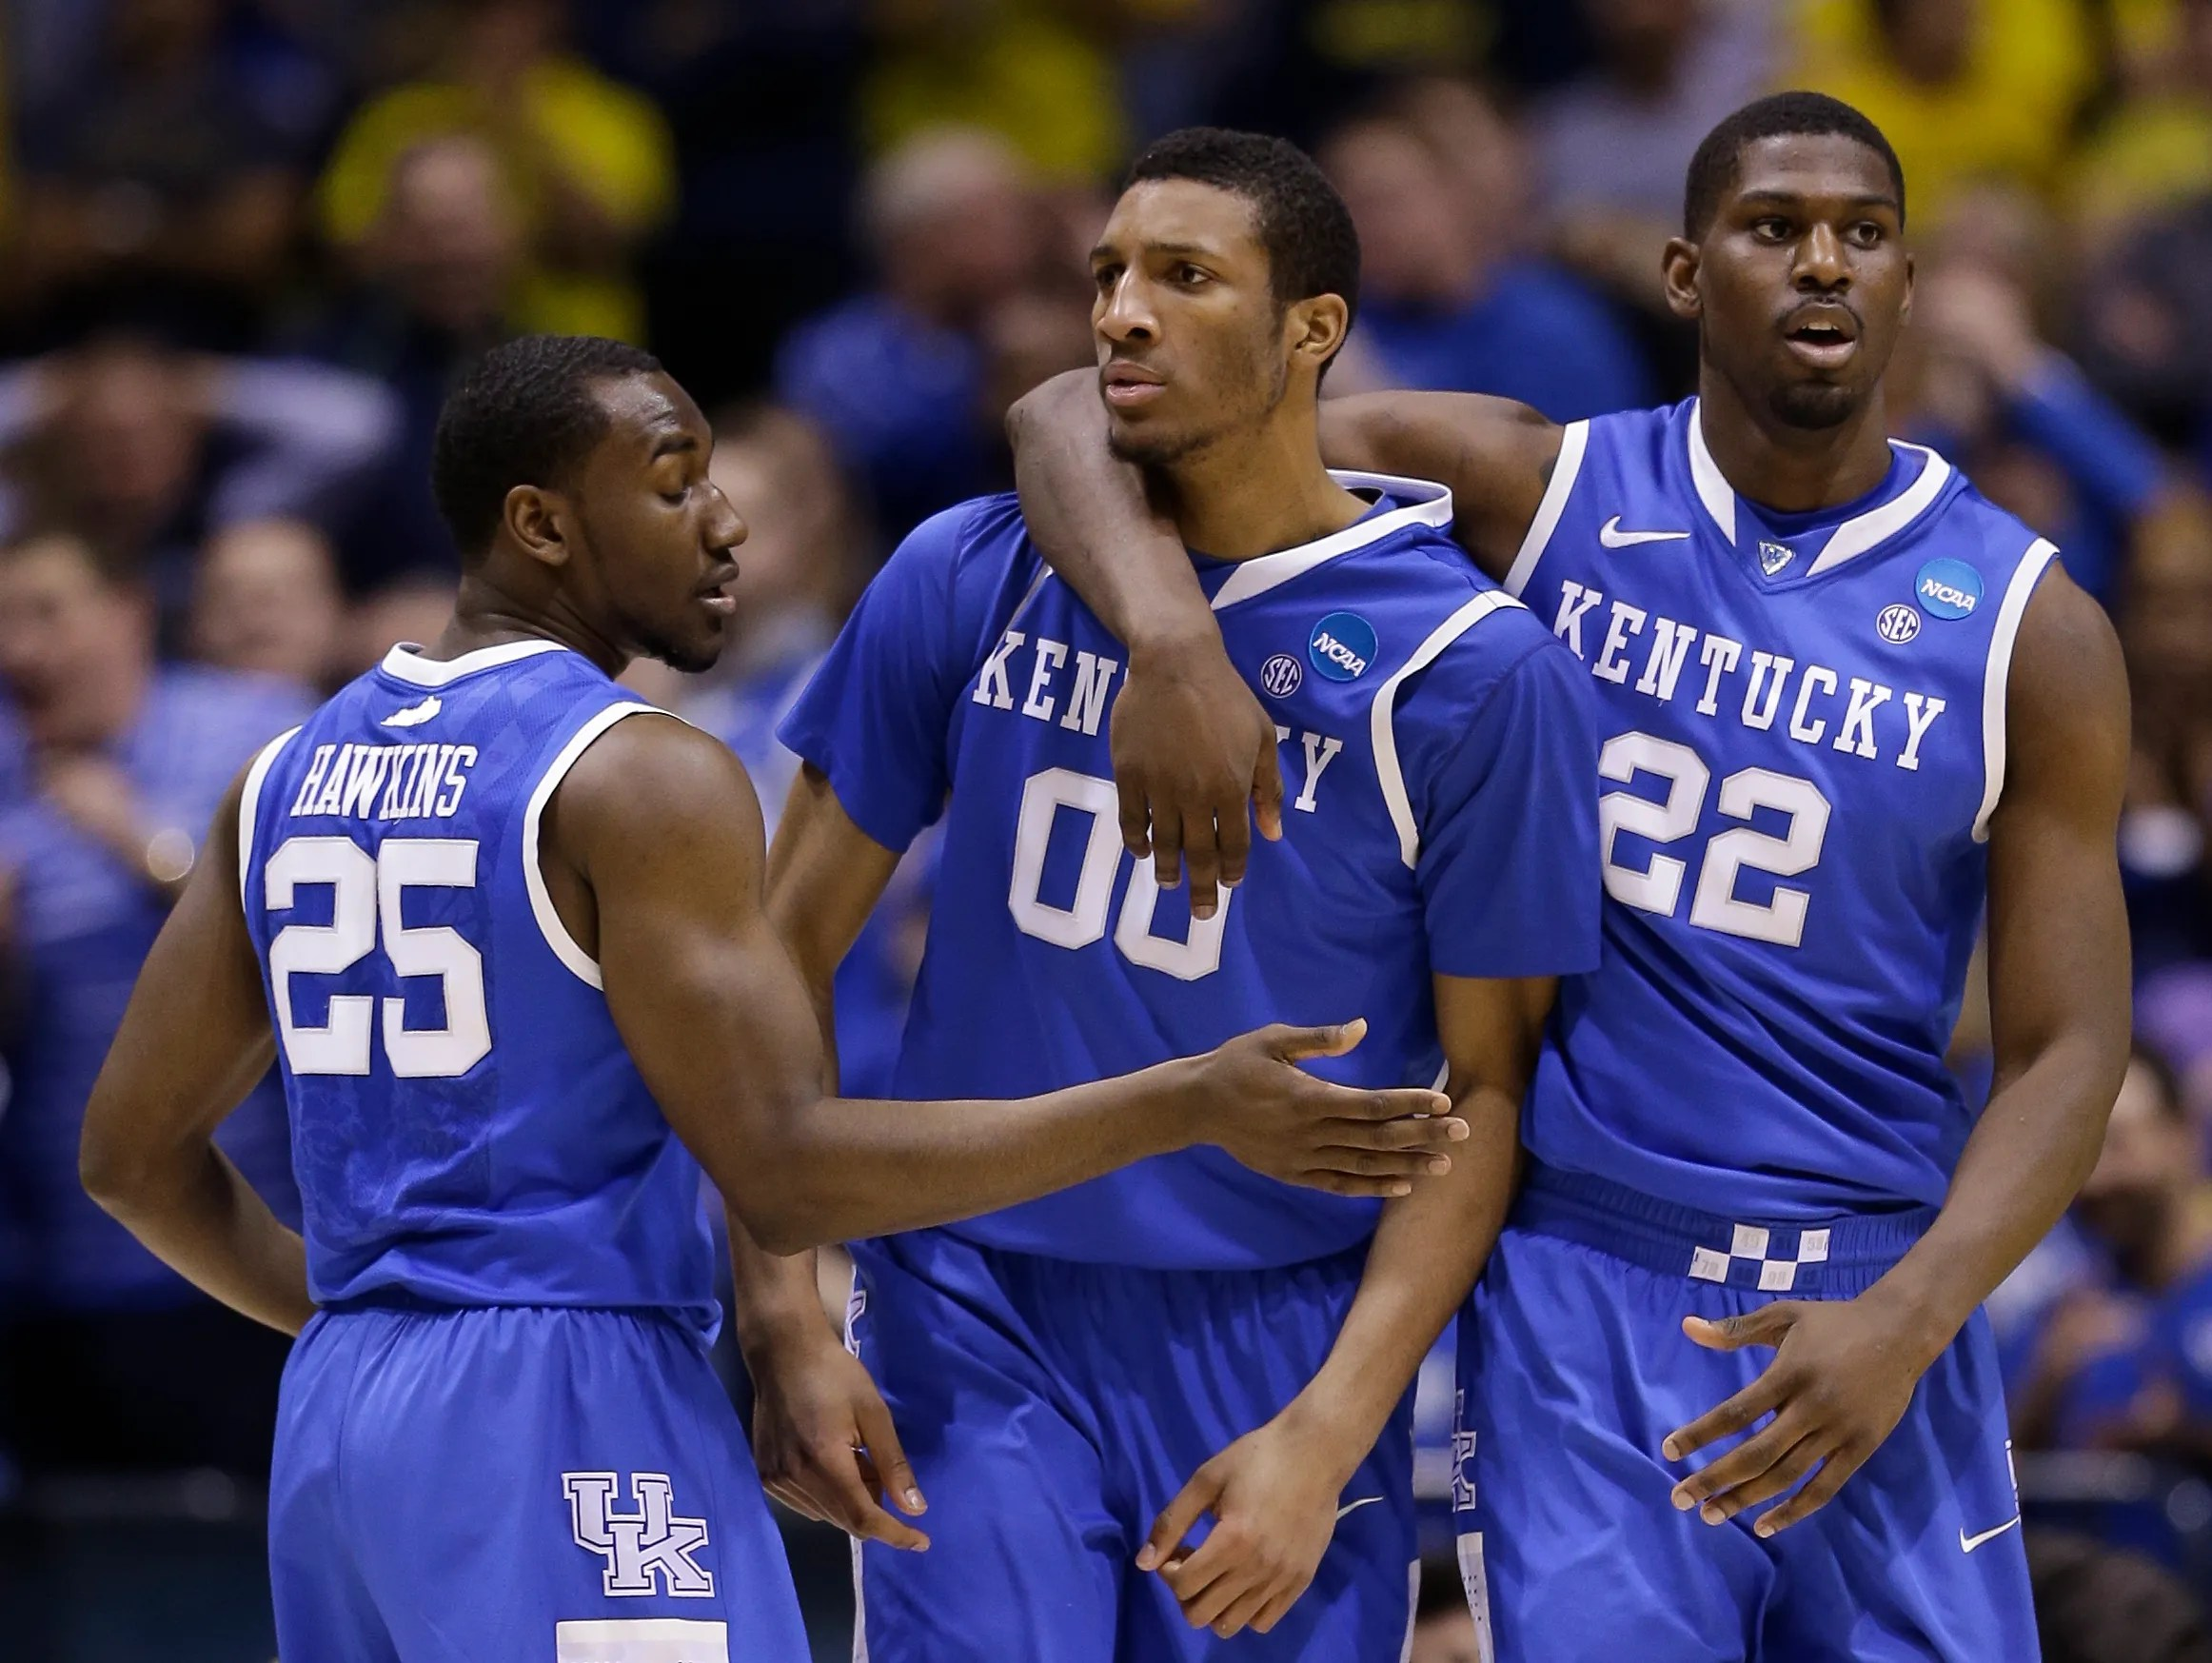 UK Rewind | A look at all five veterans | USA TODAY Sports